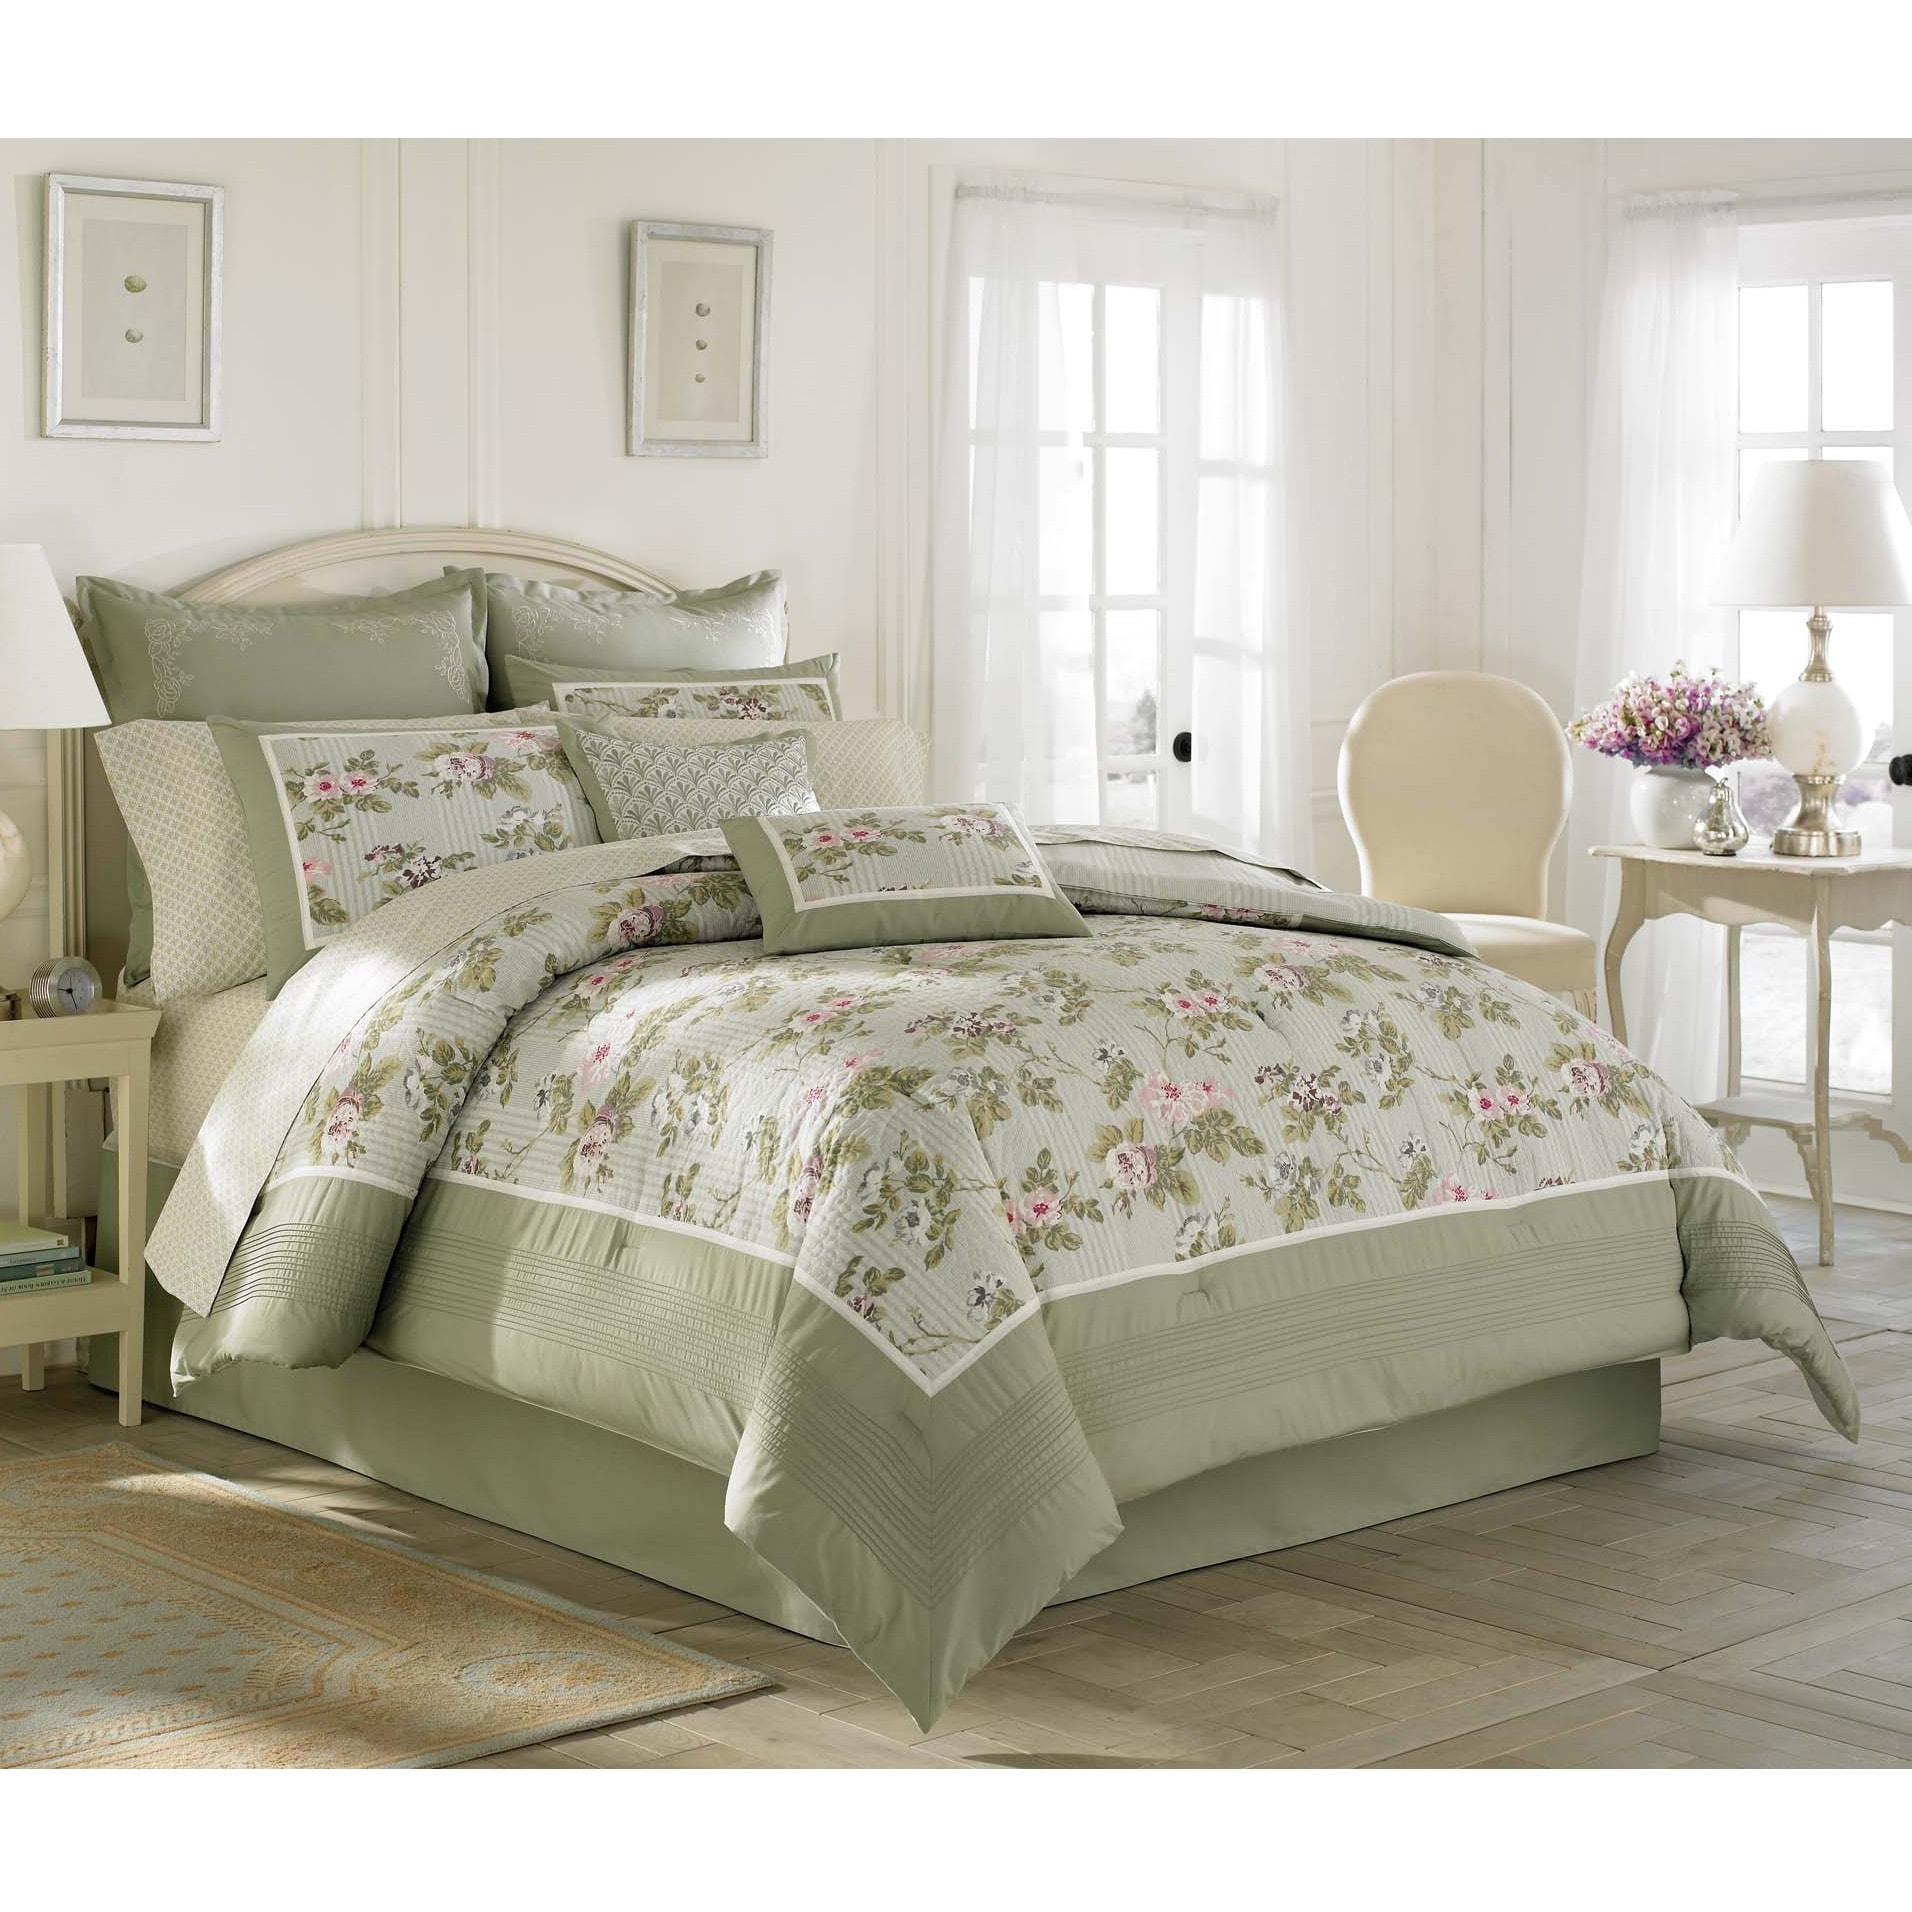 Laura Ashley Avery' Traditional Cotton 4-piece Comforter ...